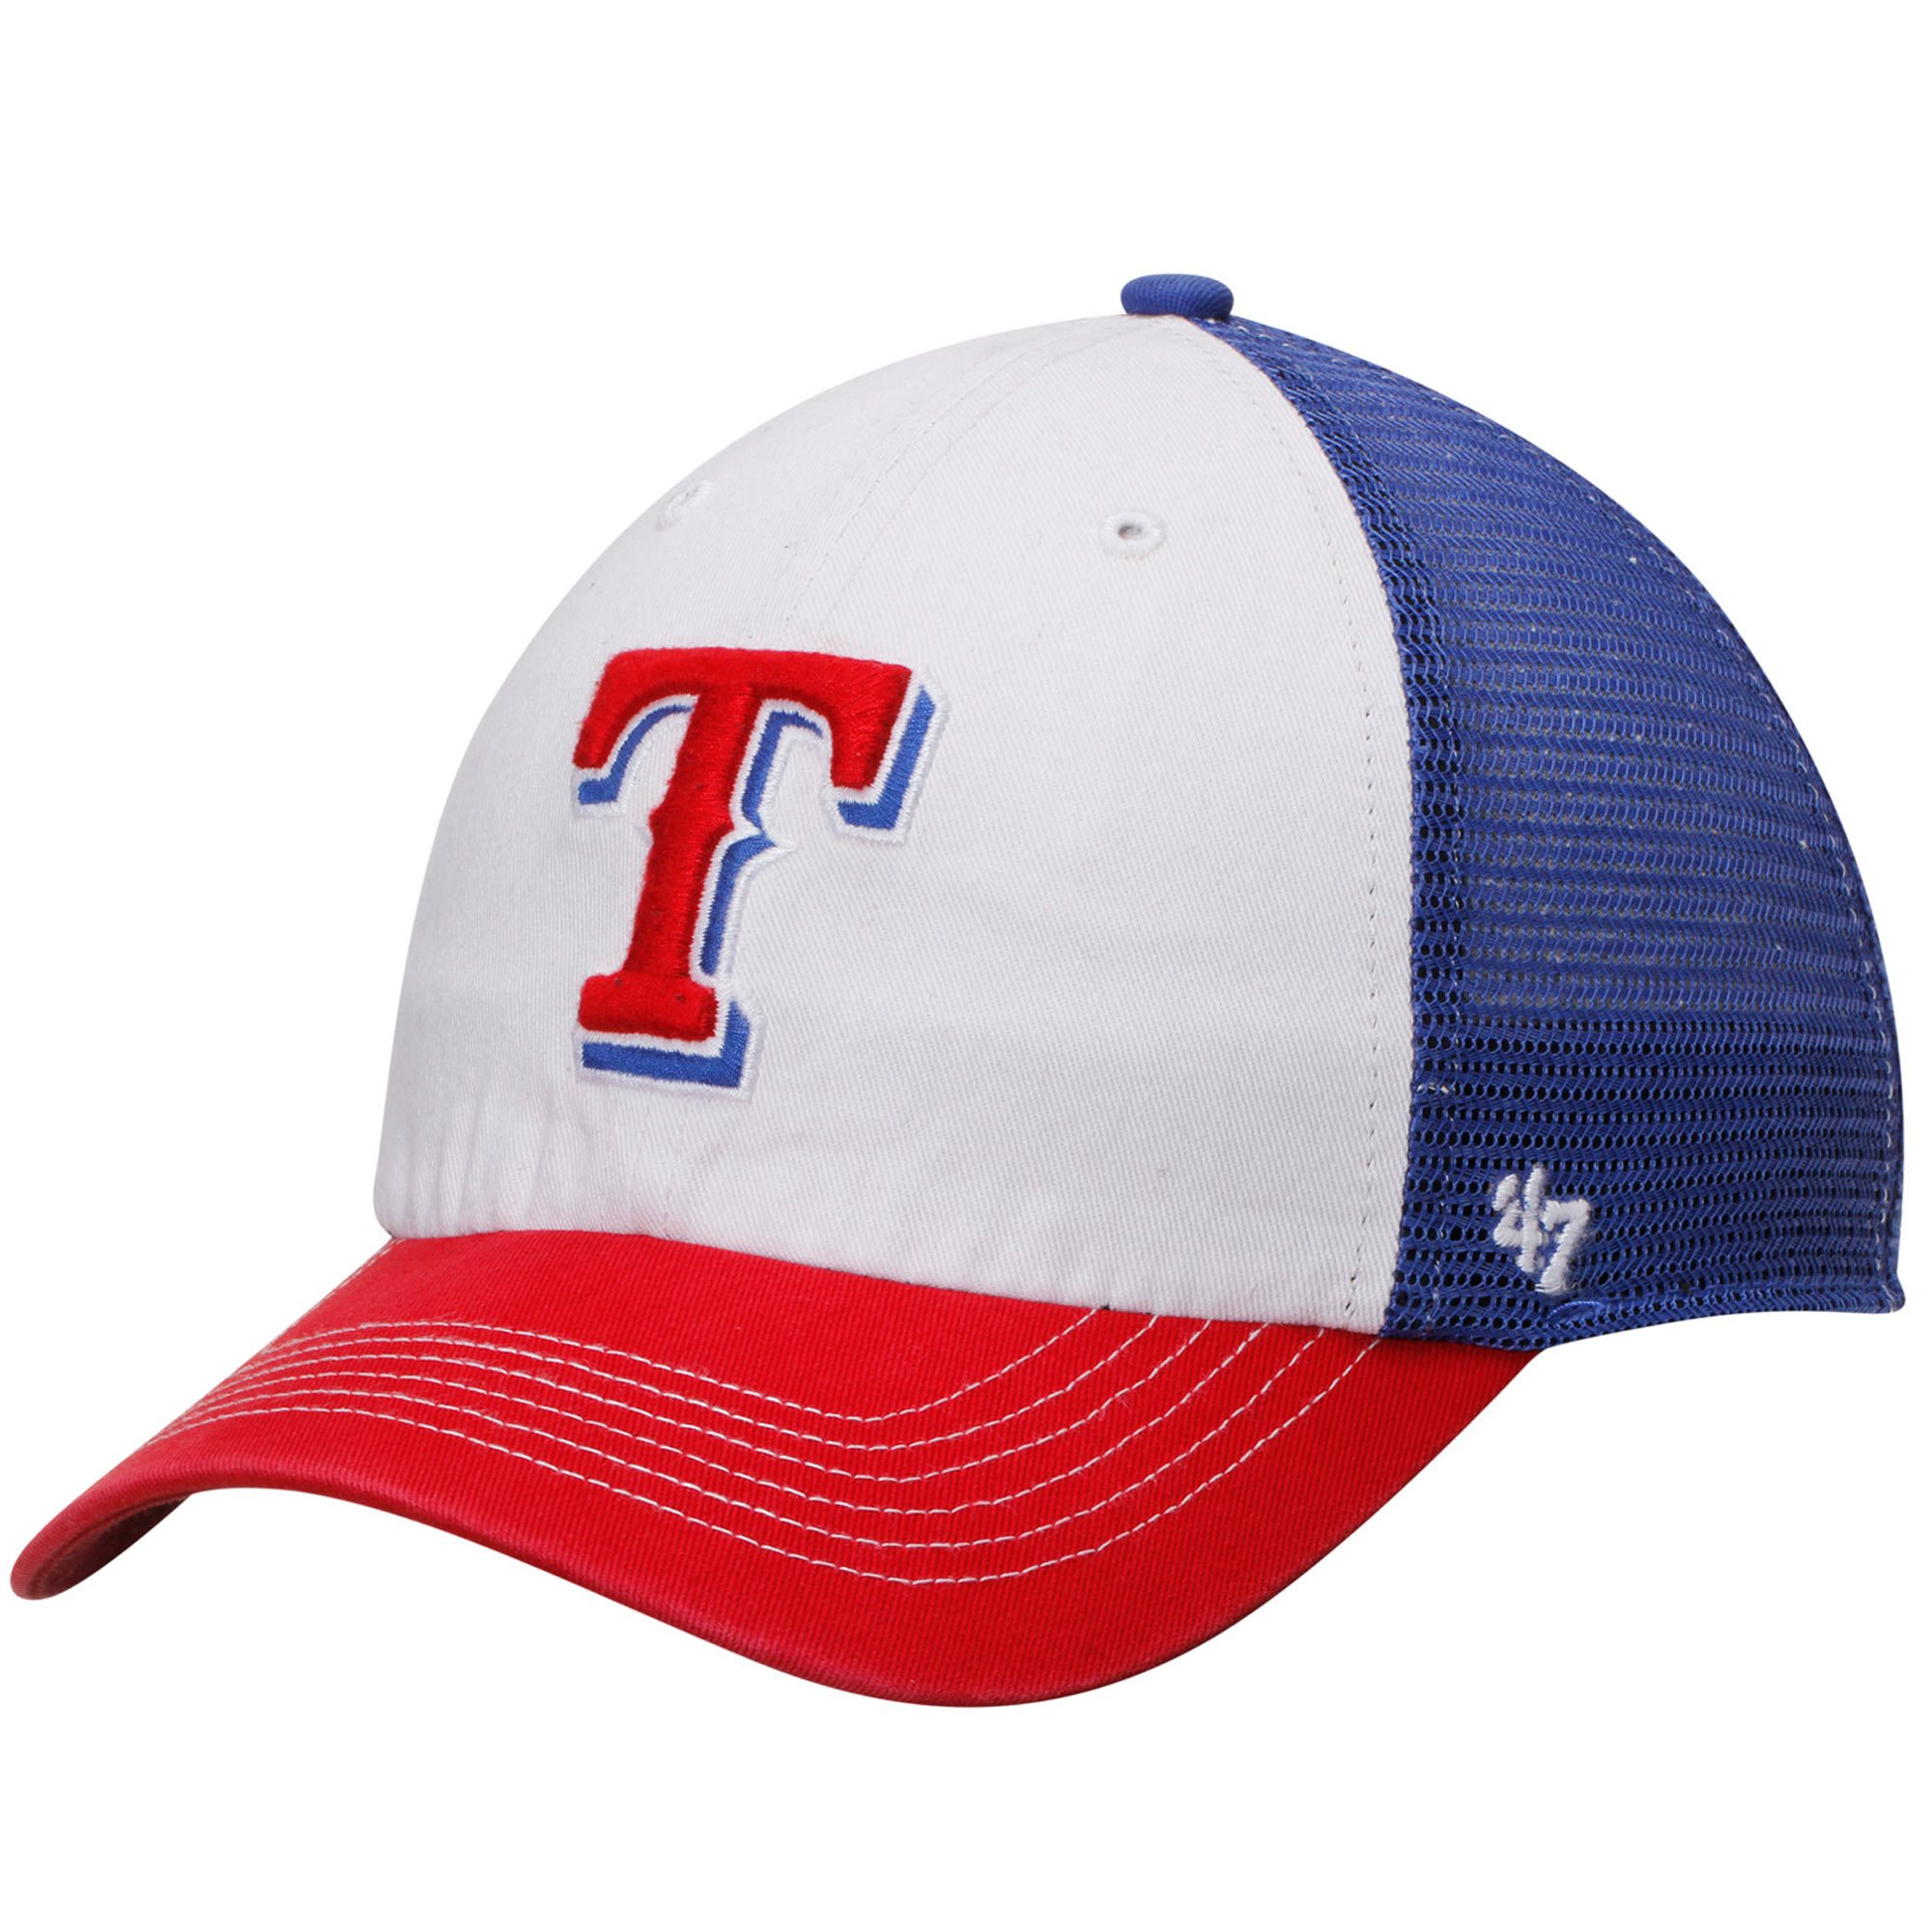 Texas Rangers '47 McKinley Closer Flex Hat - White/Red - OSFA